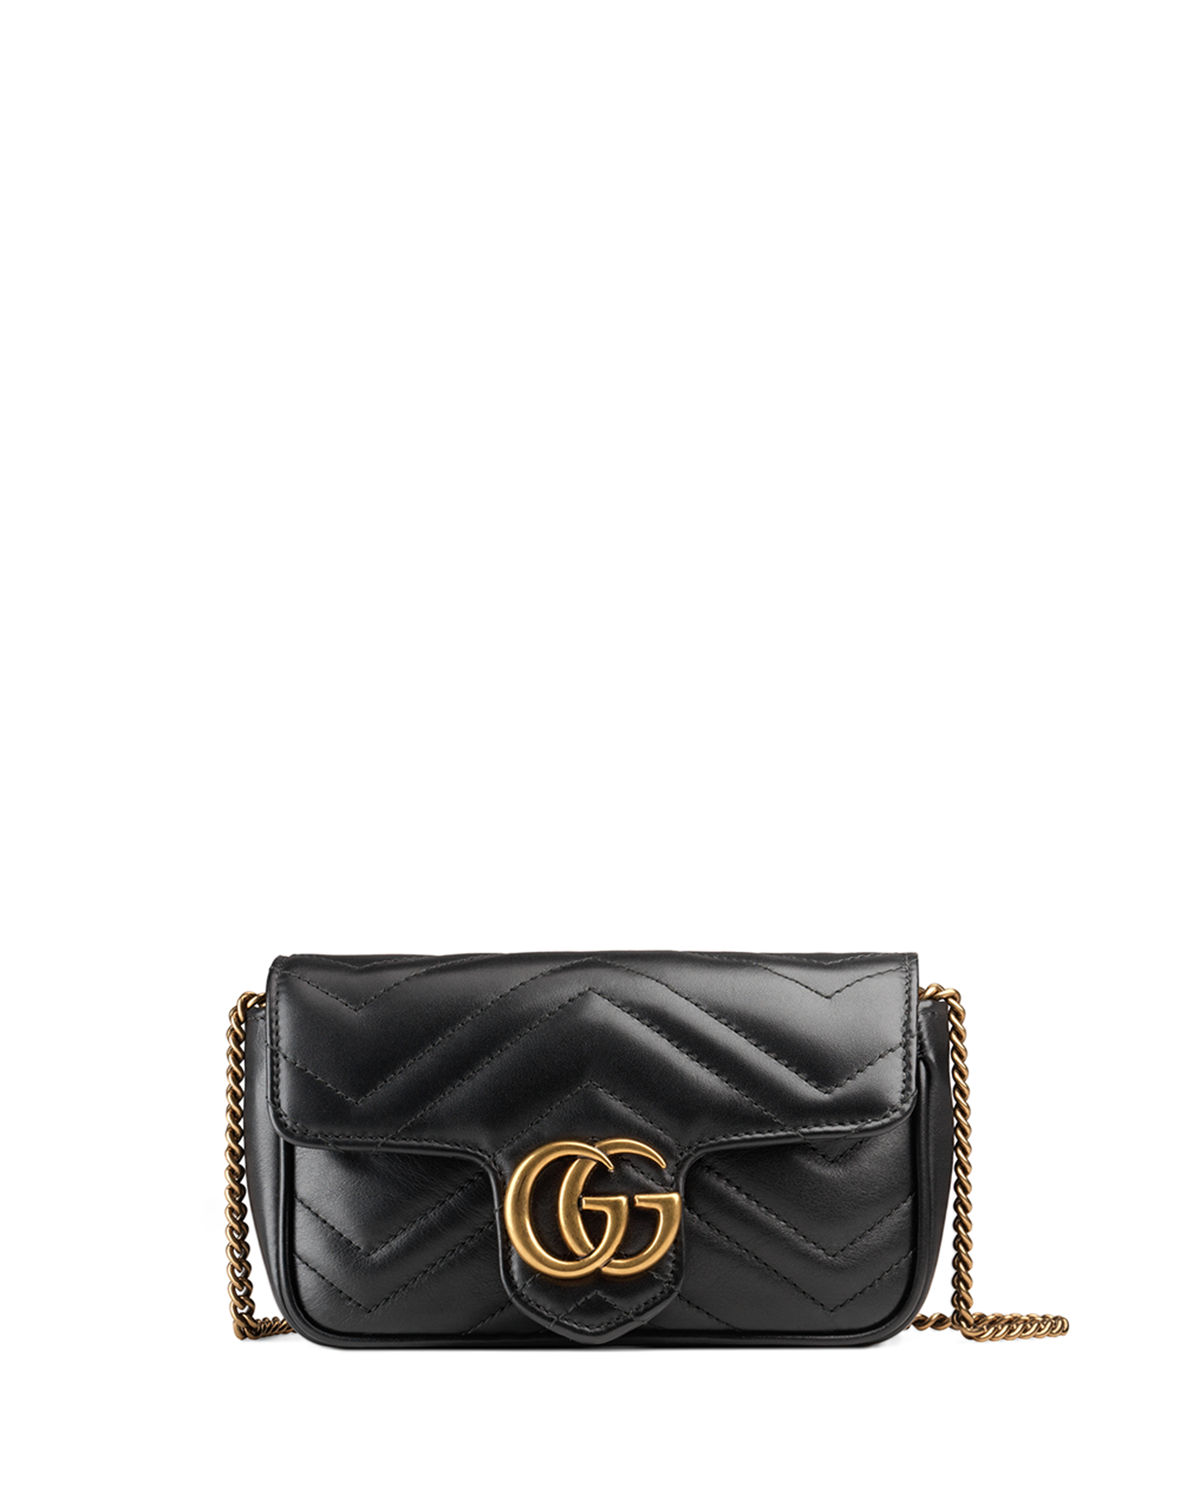 Gucci GG Marmont Matelasse Leather Super Mini Bag  fb24ff0e14124